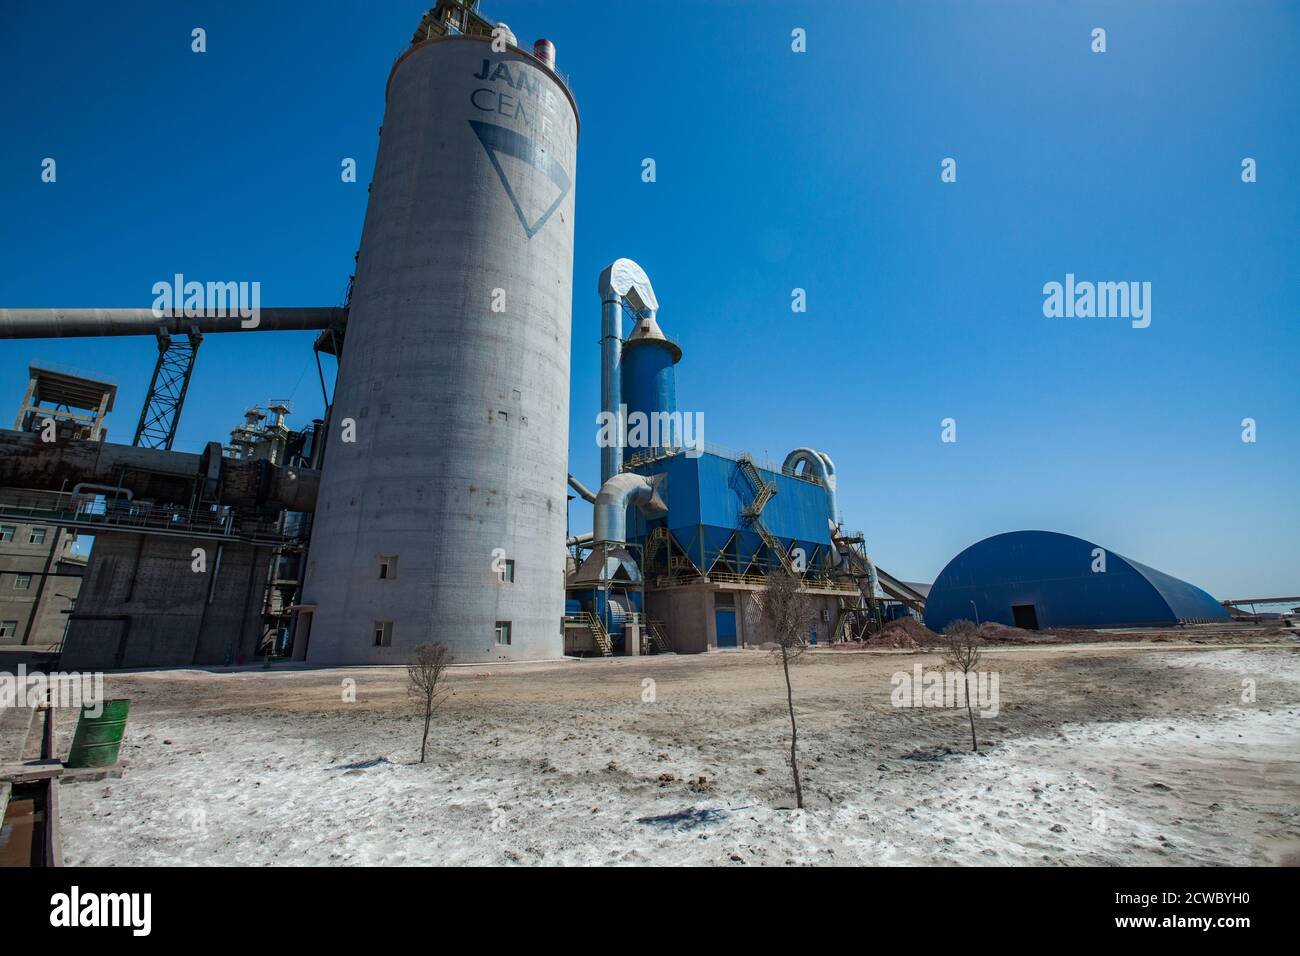 Mynaral/Kazakhstan - April 23 2012: Jambyl Cement plant. Factory buildings and silos. Panorama view with wide-angle lens. Blue sky. Stock Photo